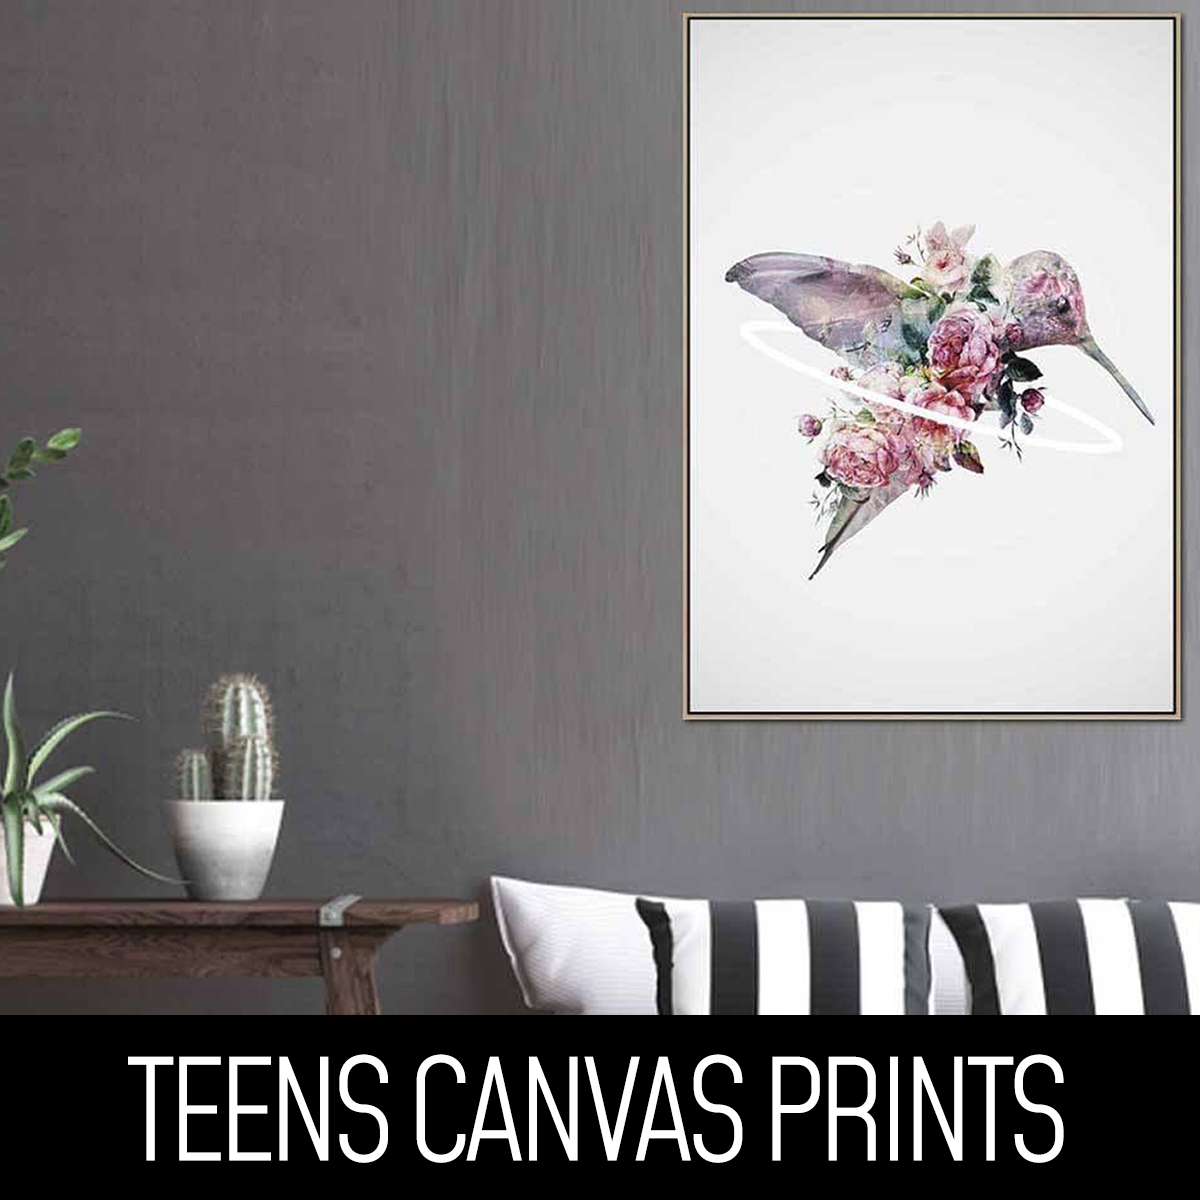 Teens Canvas Prints